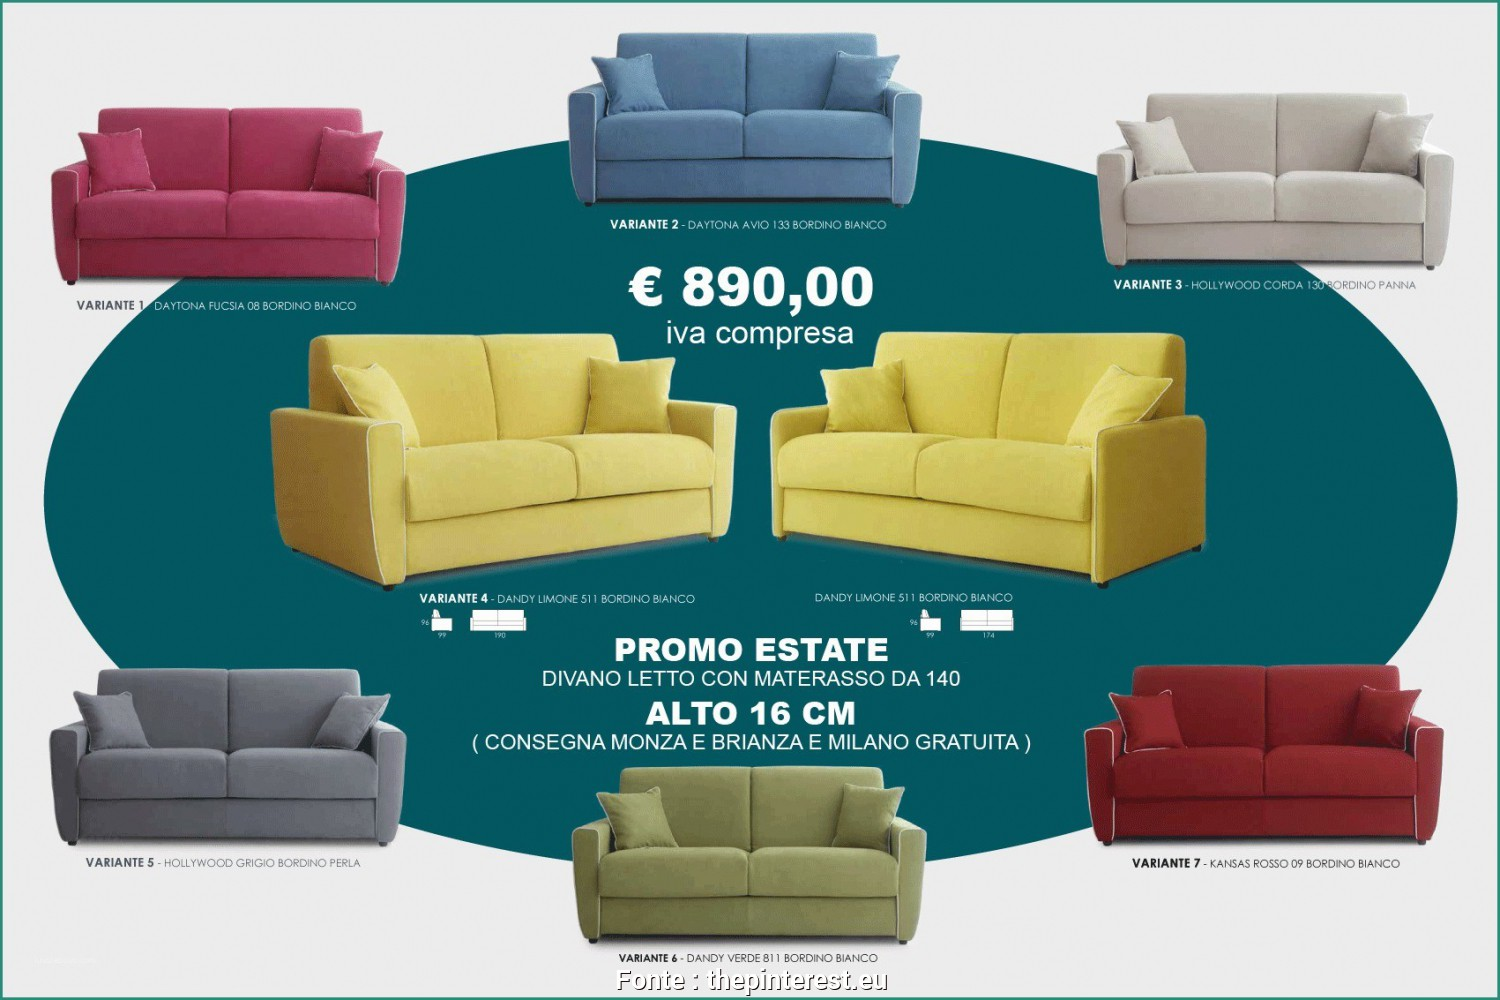 Beautiful Dondi Salotti Outlet Images Lepicentre Info Lepicentre